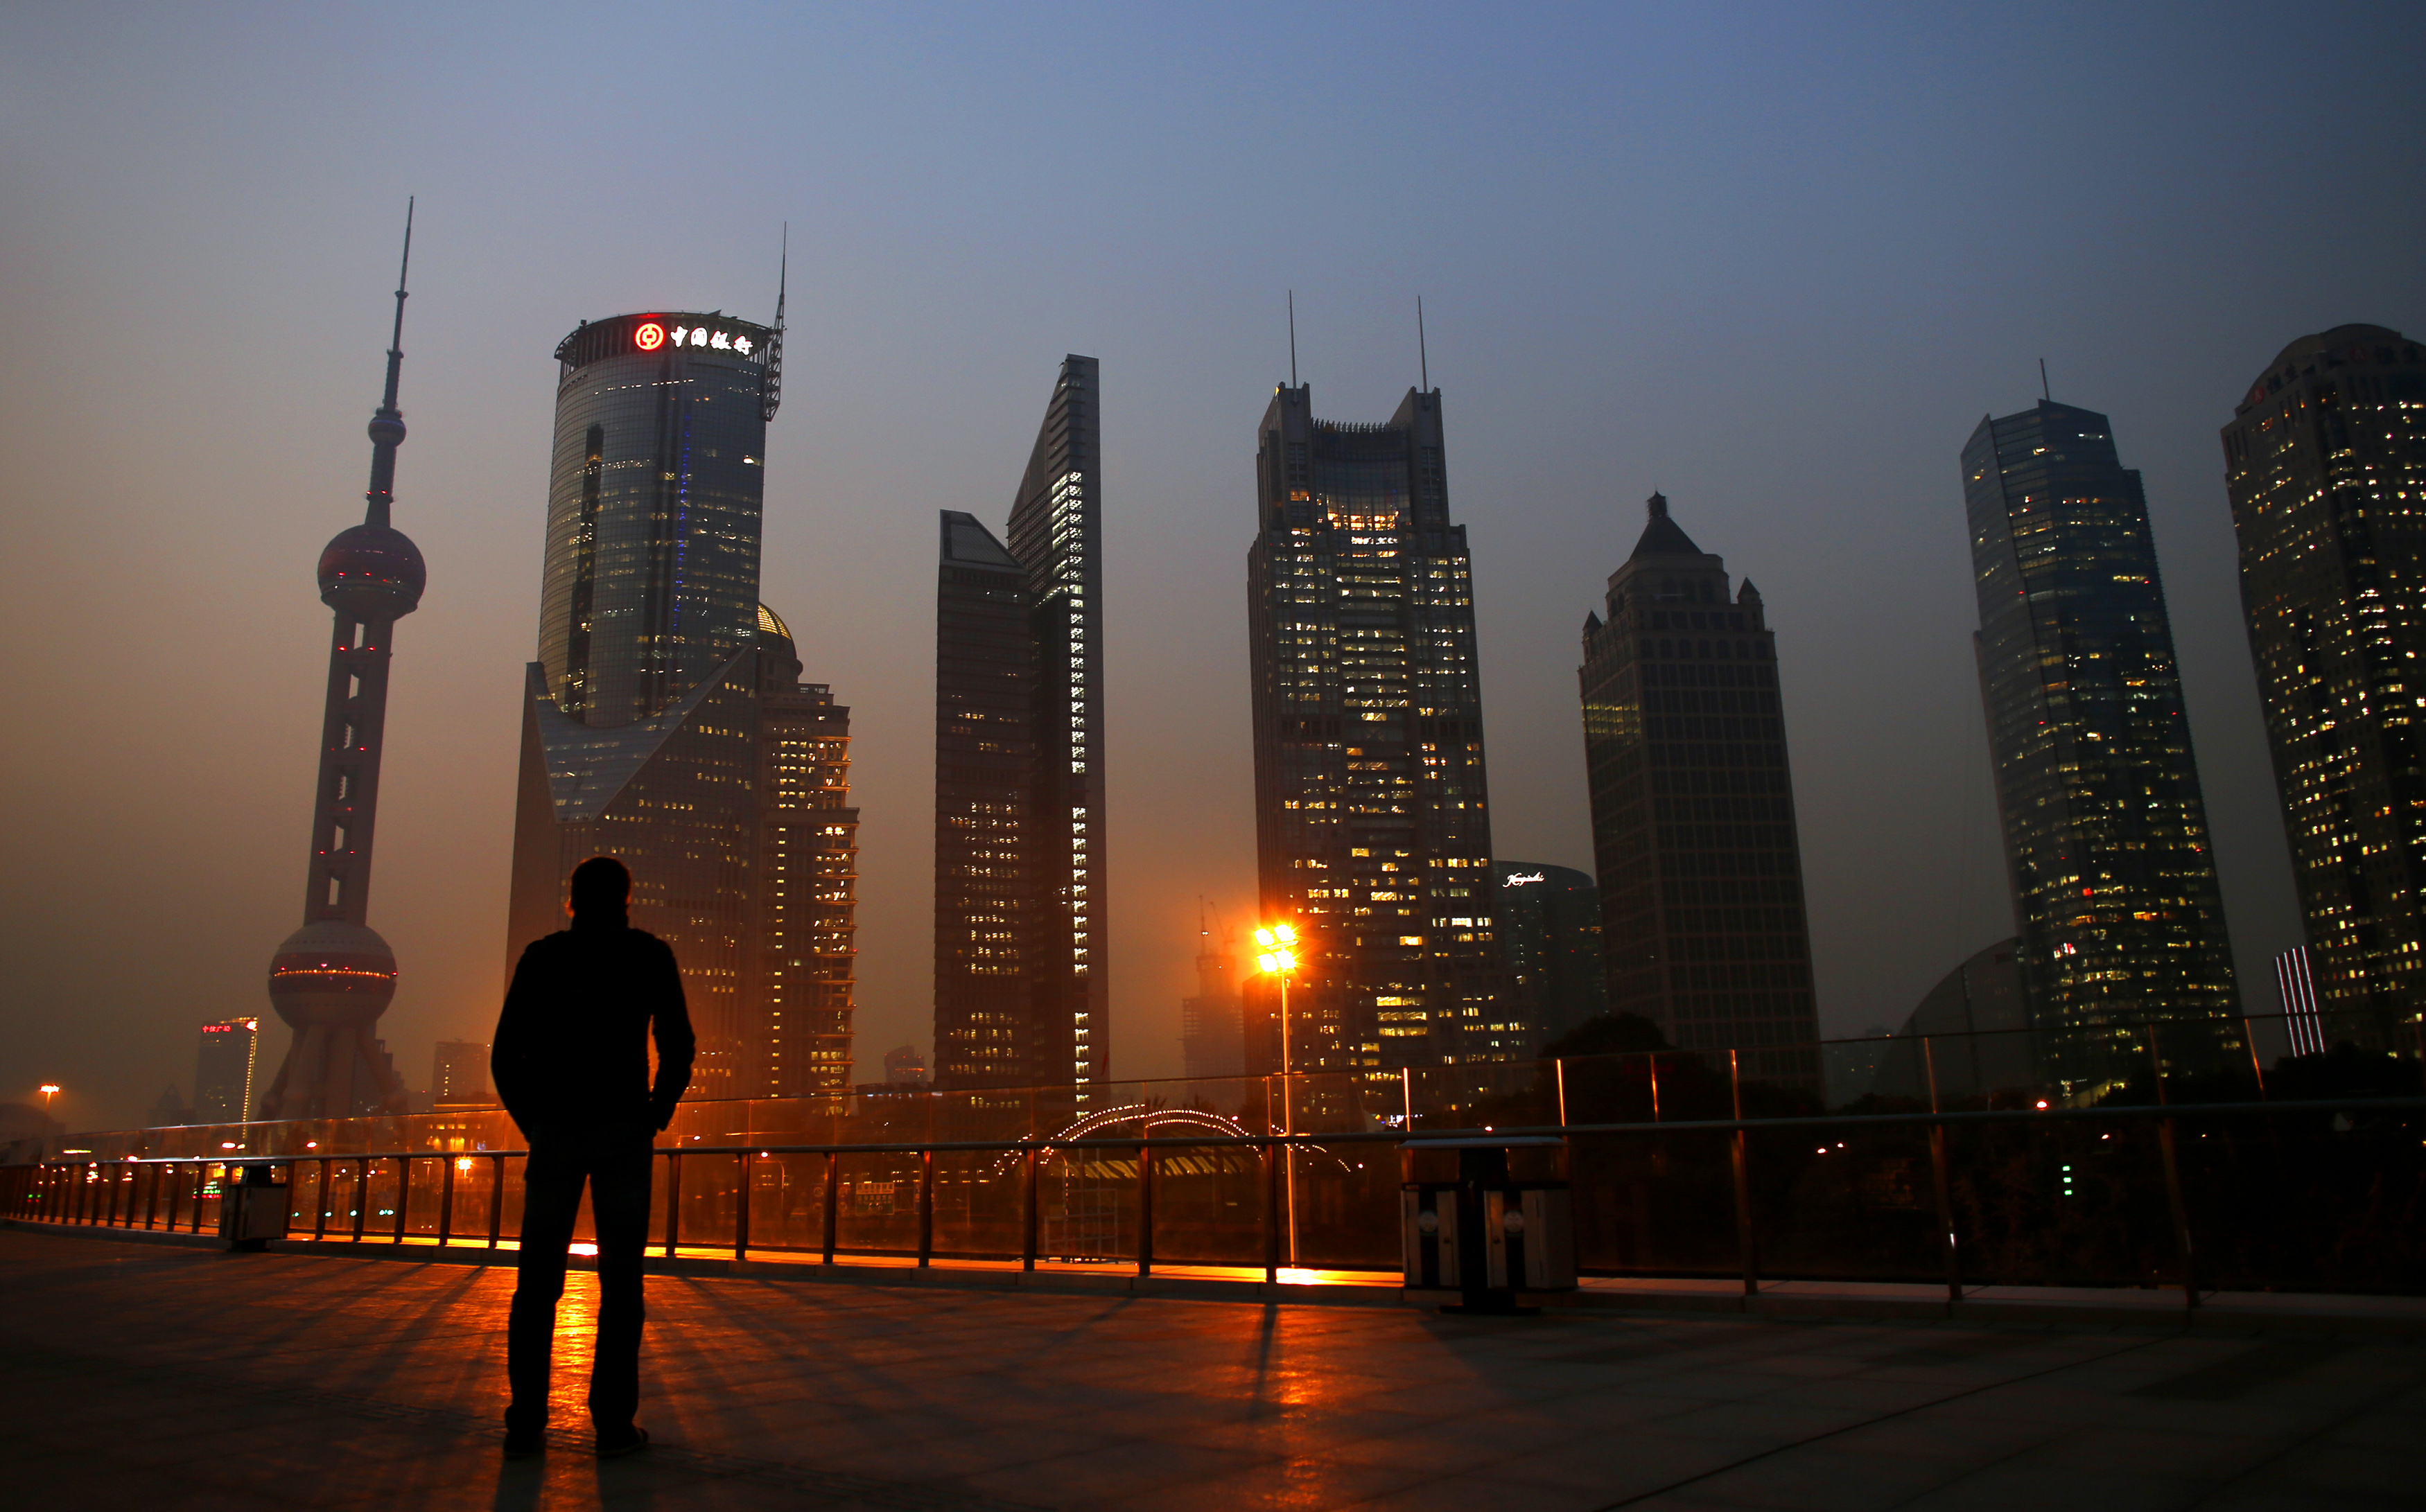 China's economy grew 6.8% in the 3rd quarter